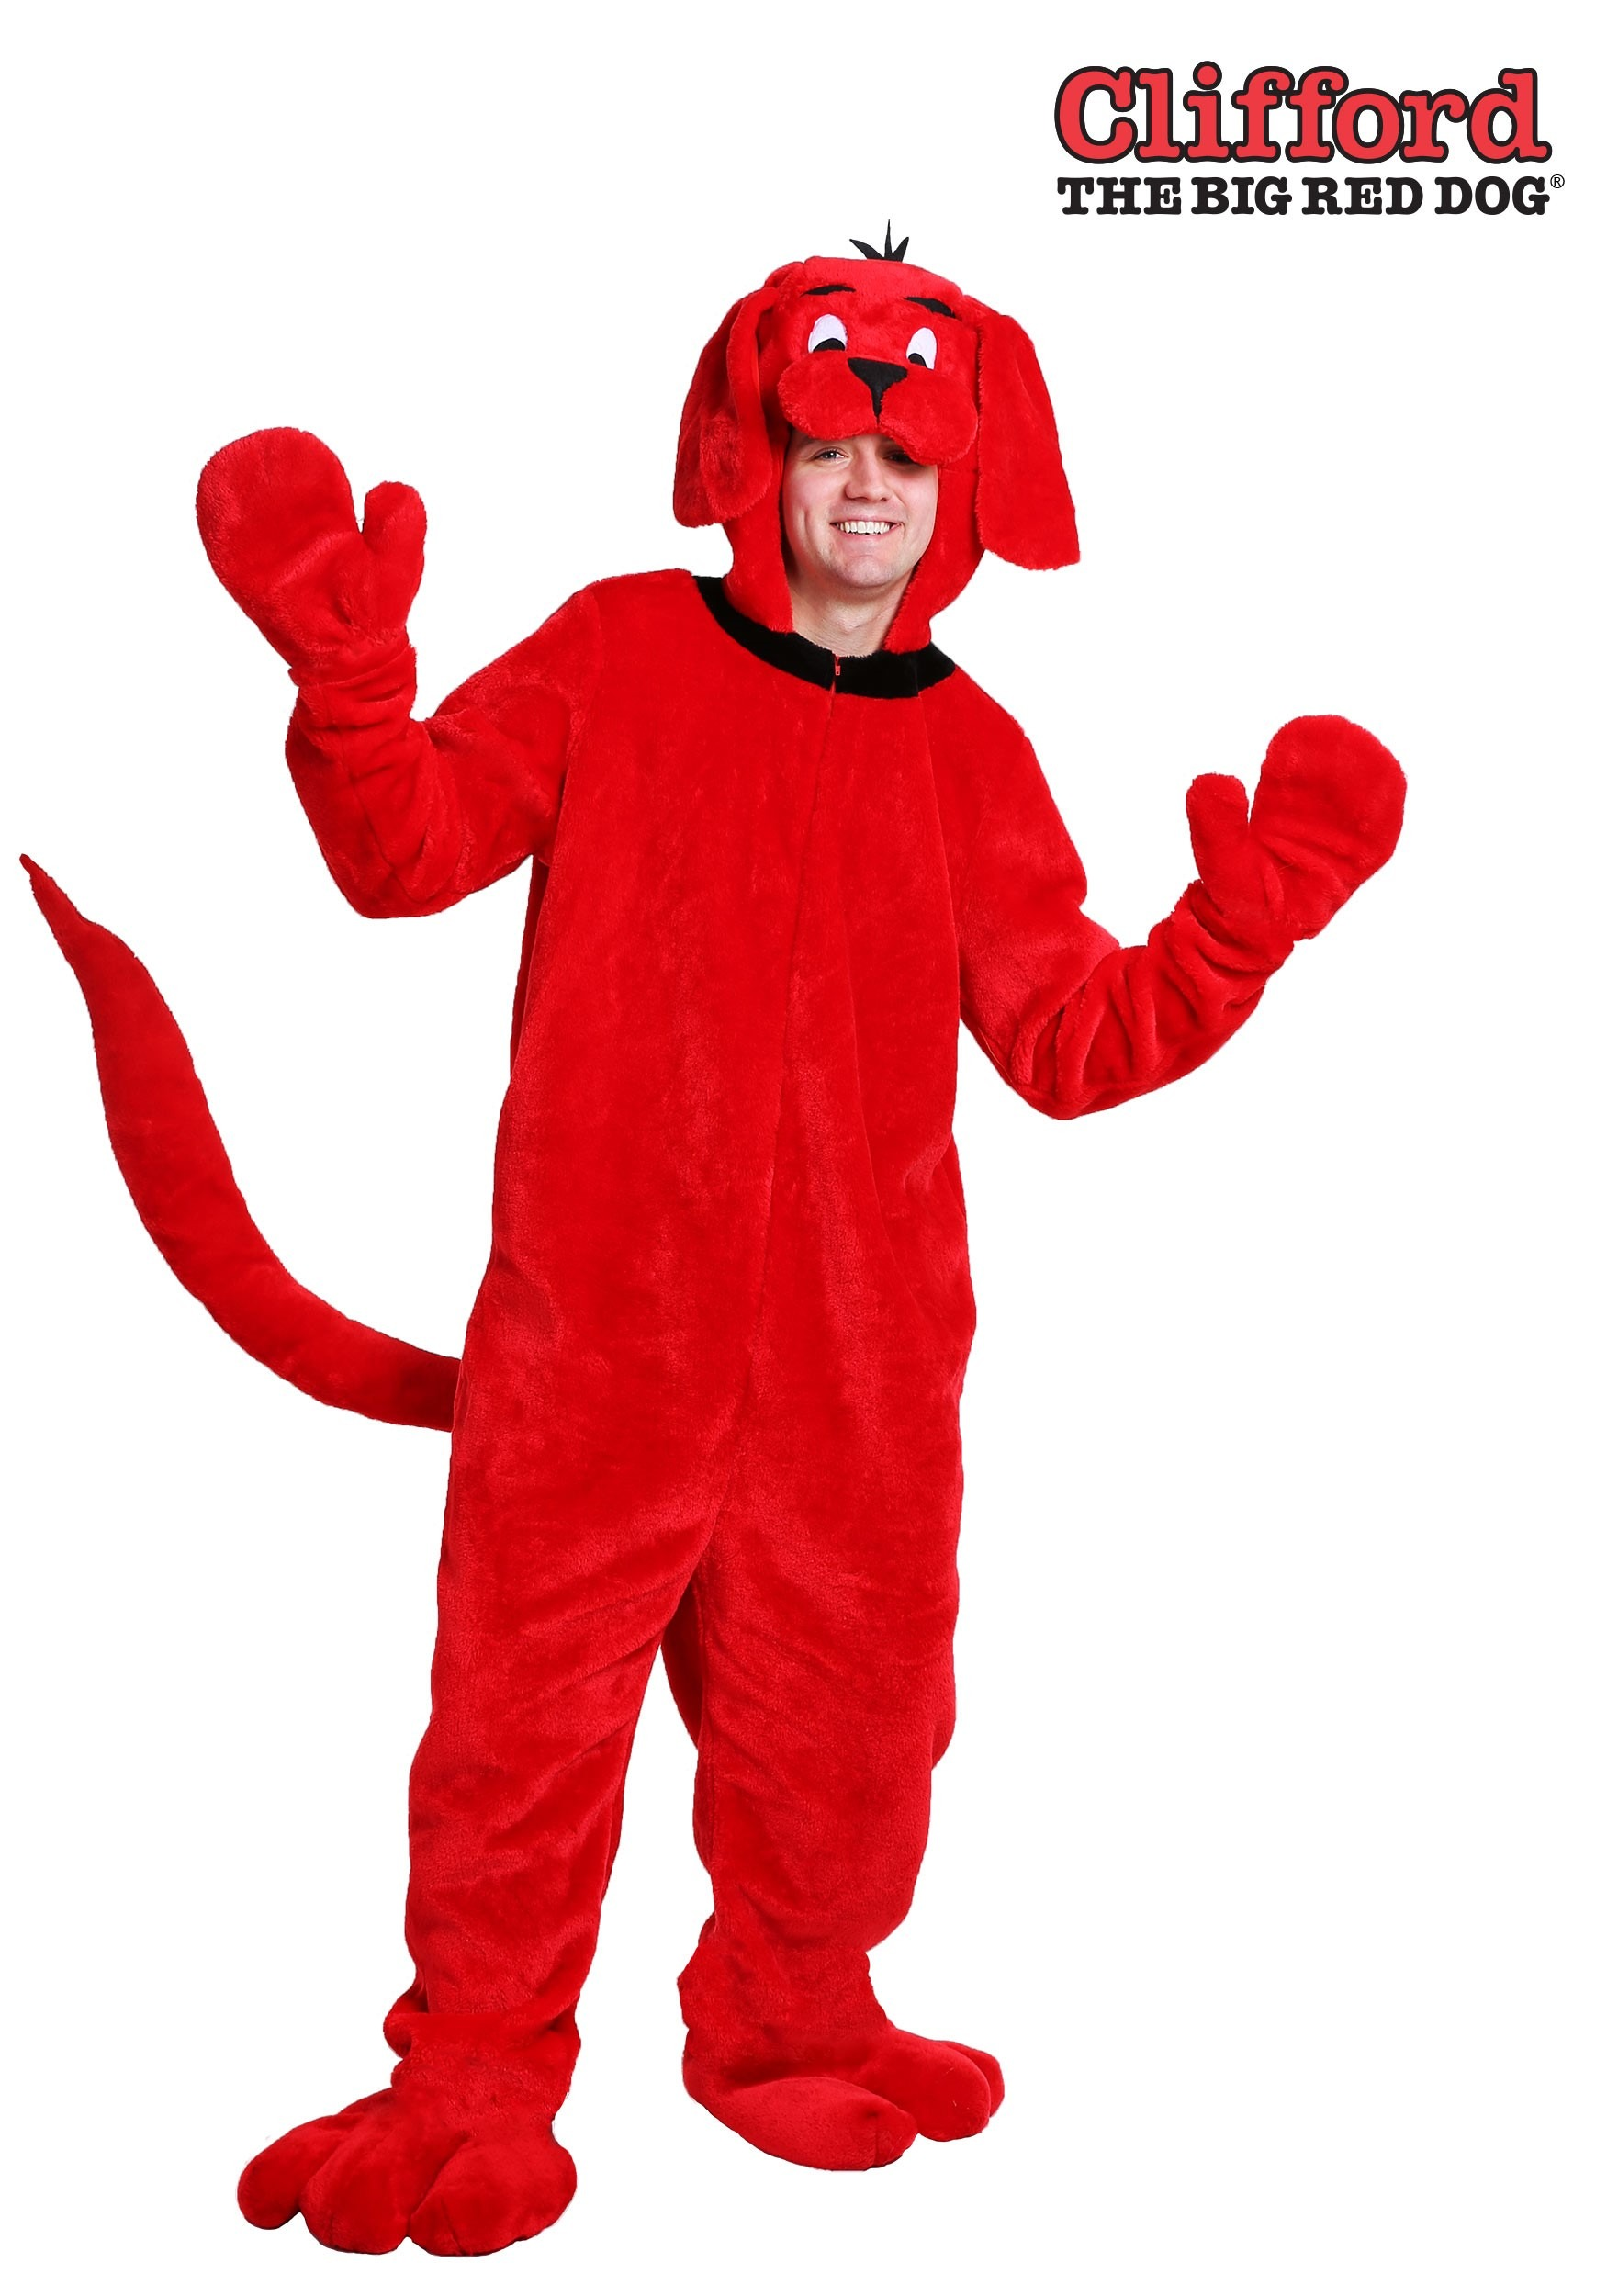 e67d74f49eb Clifford the Big Red Dog Plus Size Costume for Adults 2X 3X